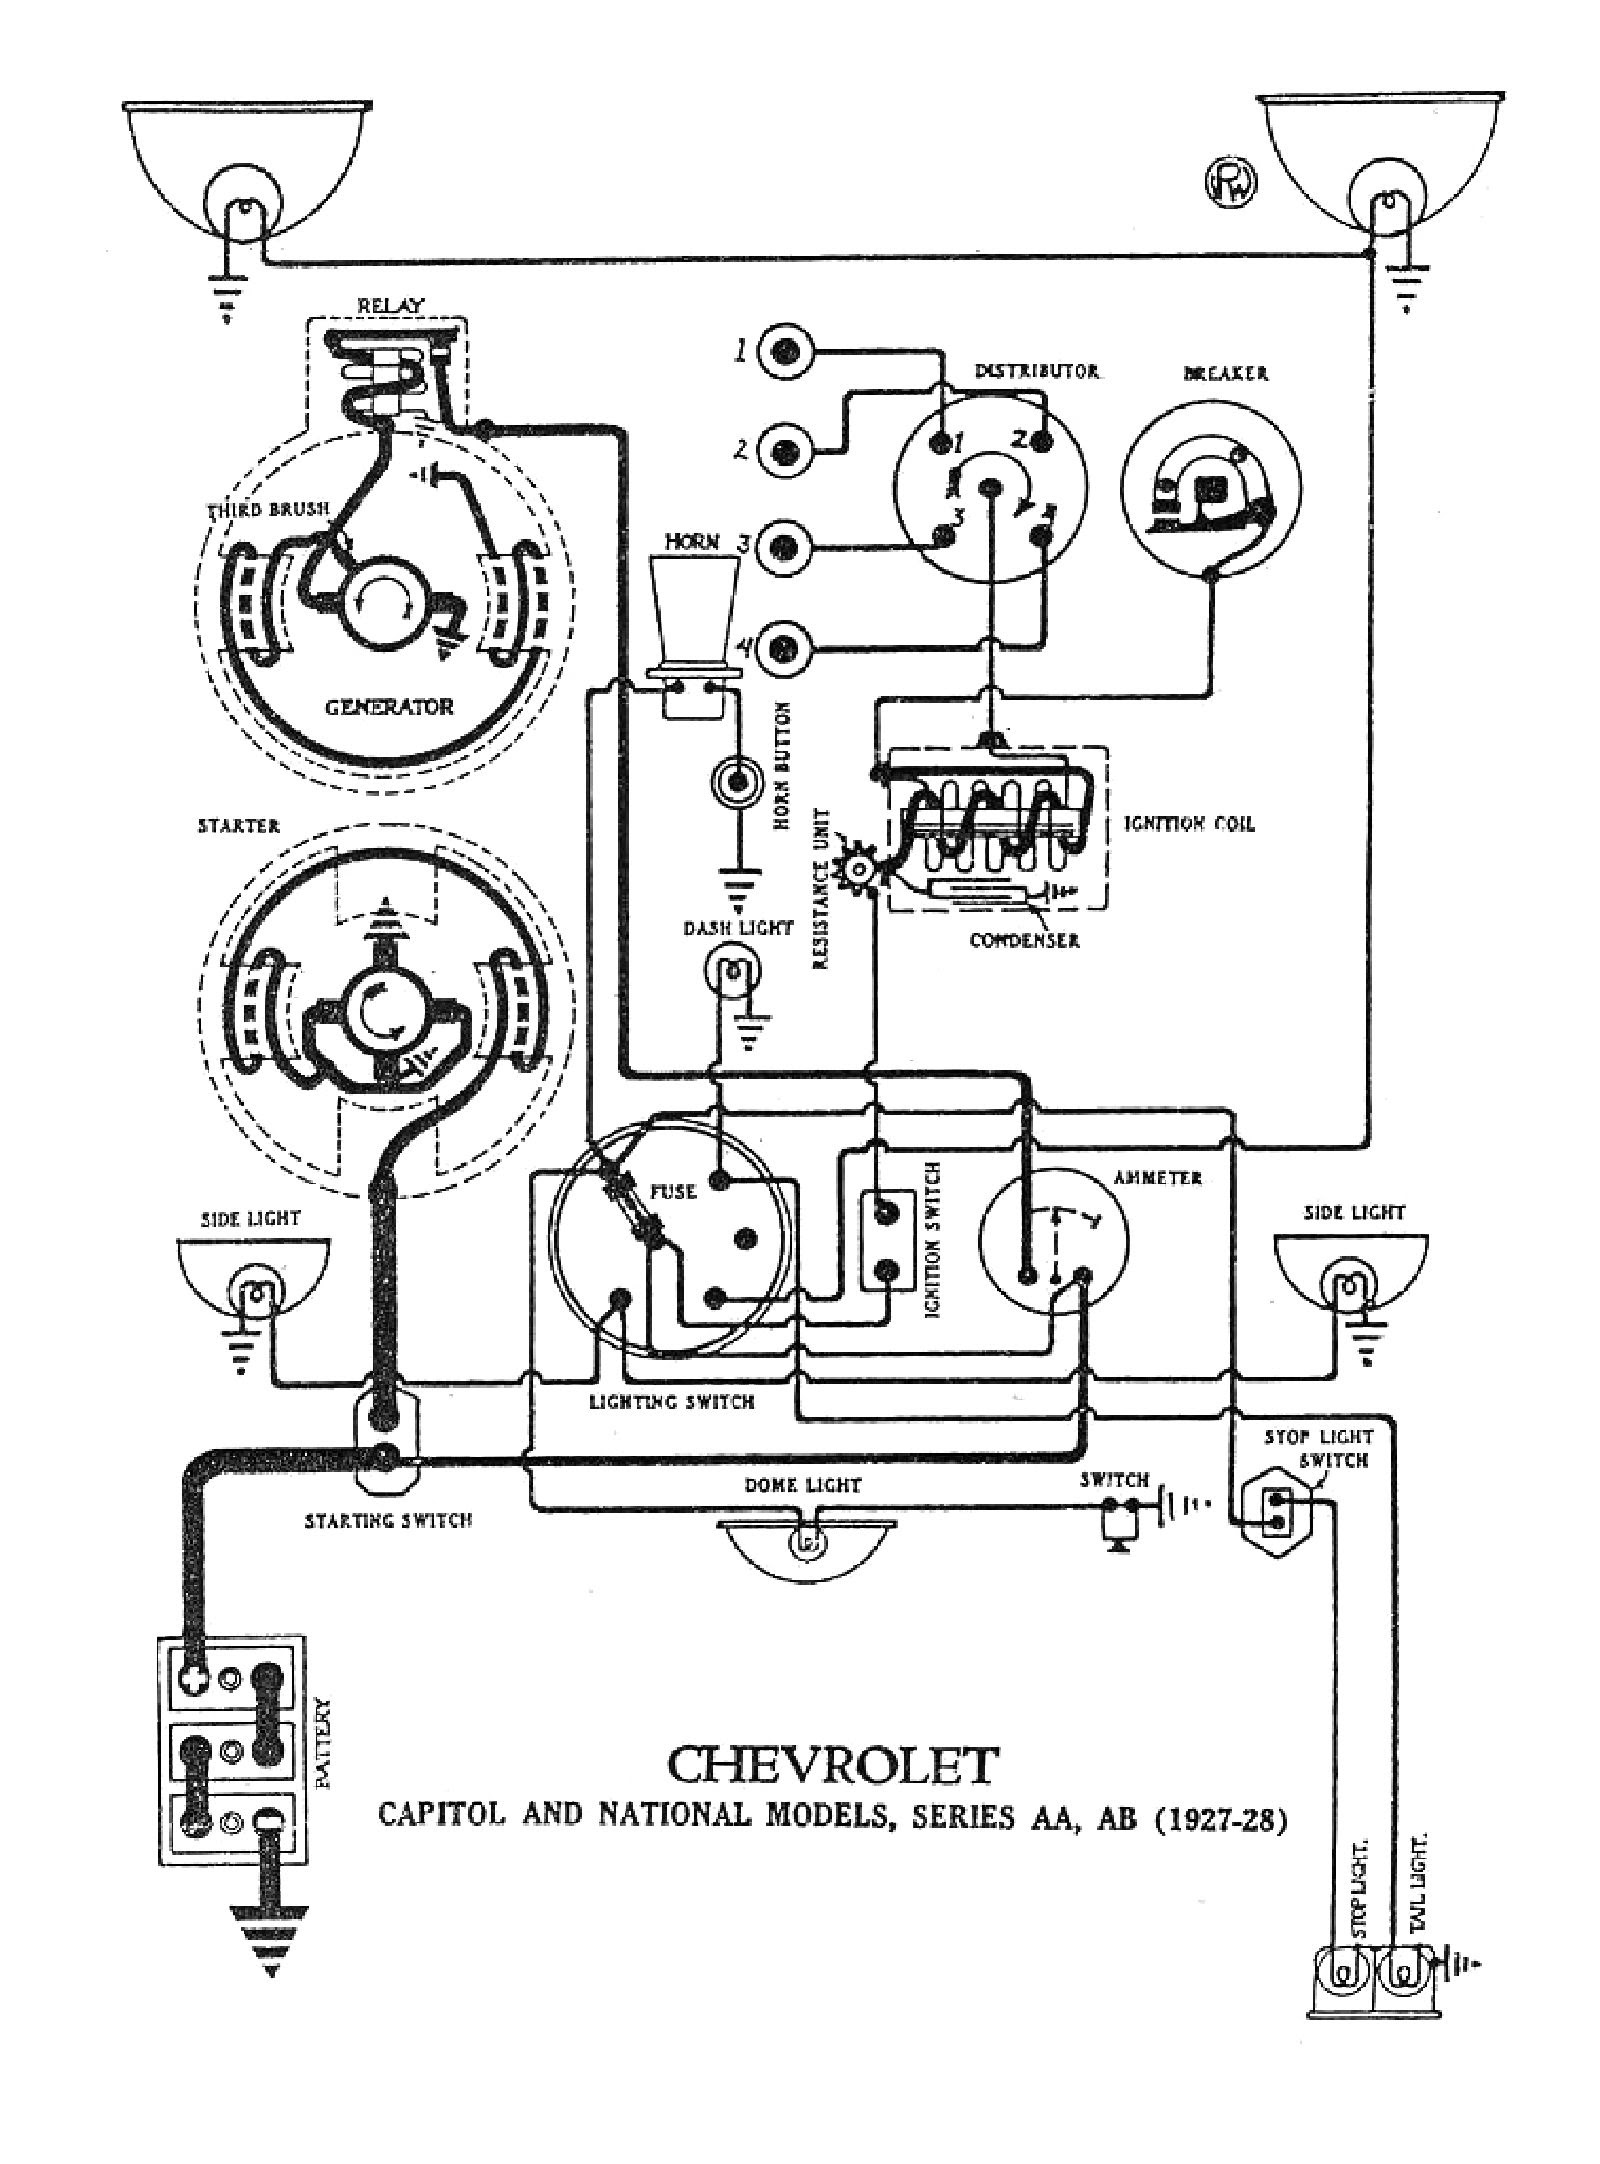 Chevy Wiring Diagrams Site Wiring Diagram Octavia A Octavia A Musikami It